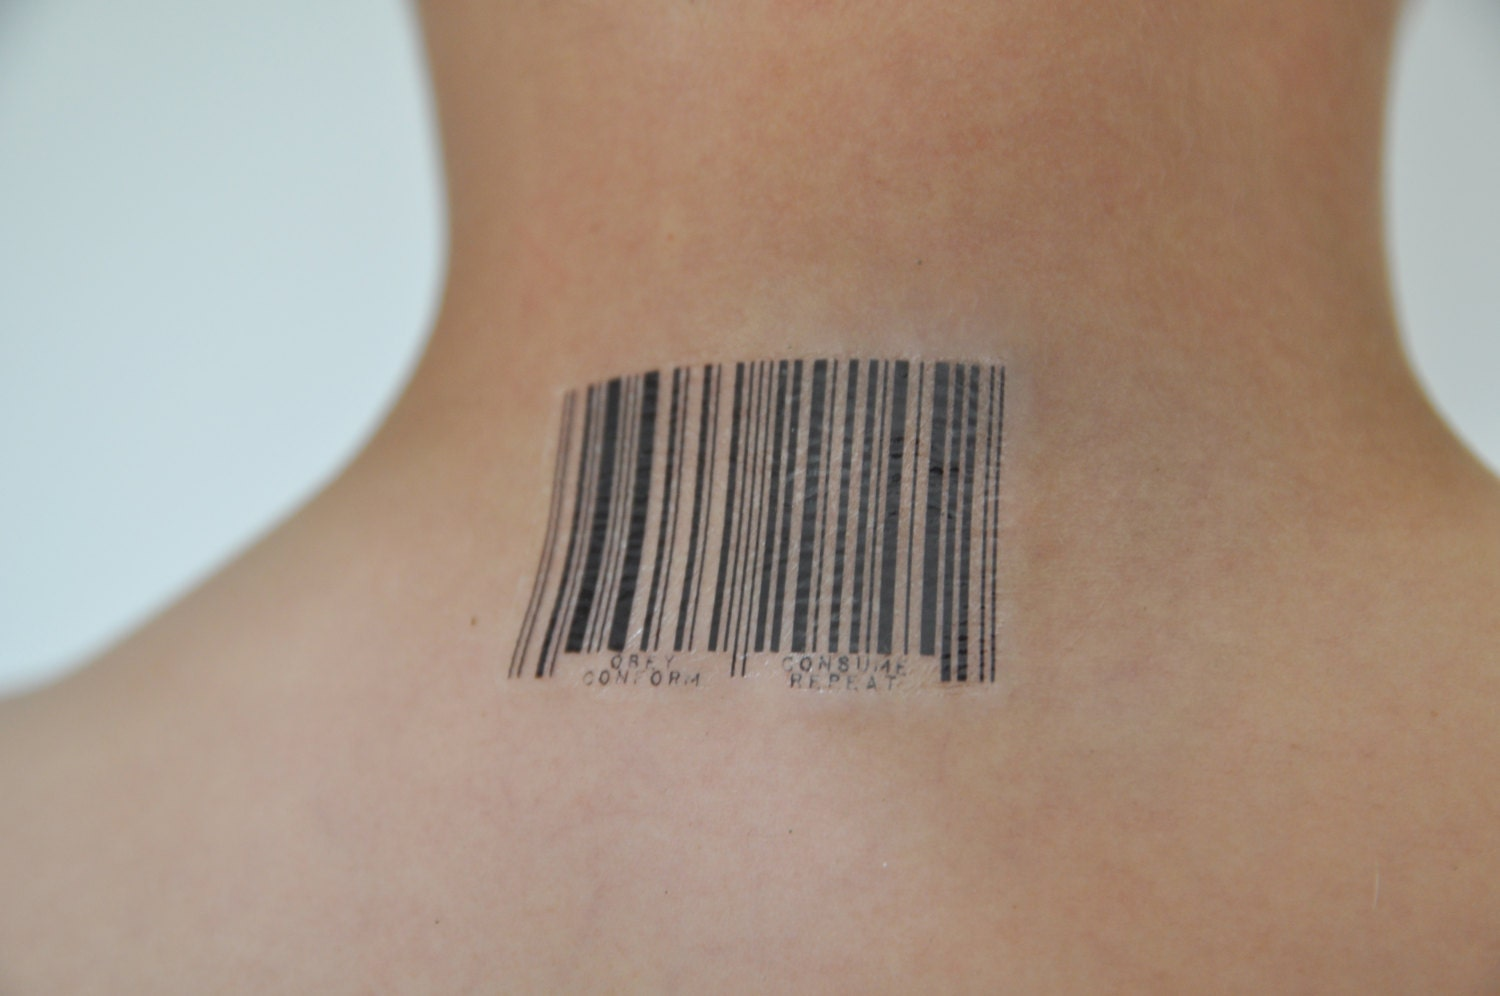 barcode temporary tattoo quirky temporary tattoo tattoo. Black Bedroom Furniture Sets. Home Design Ideas